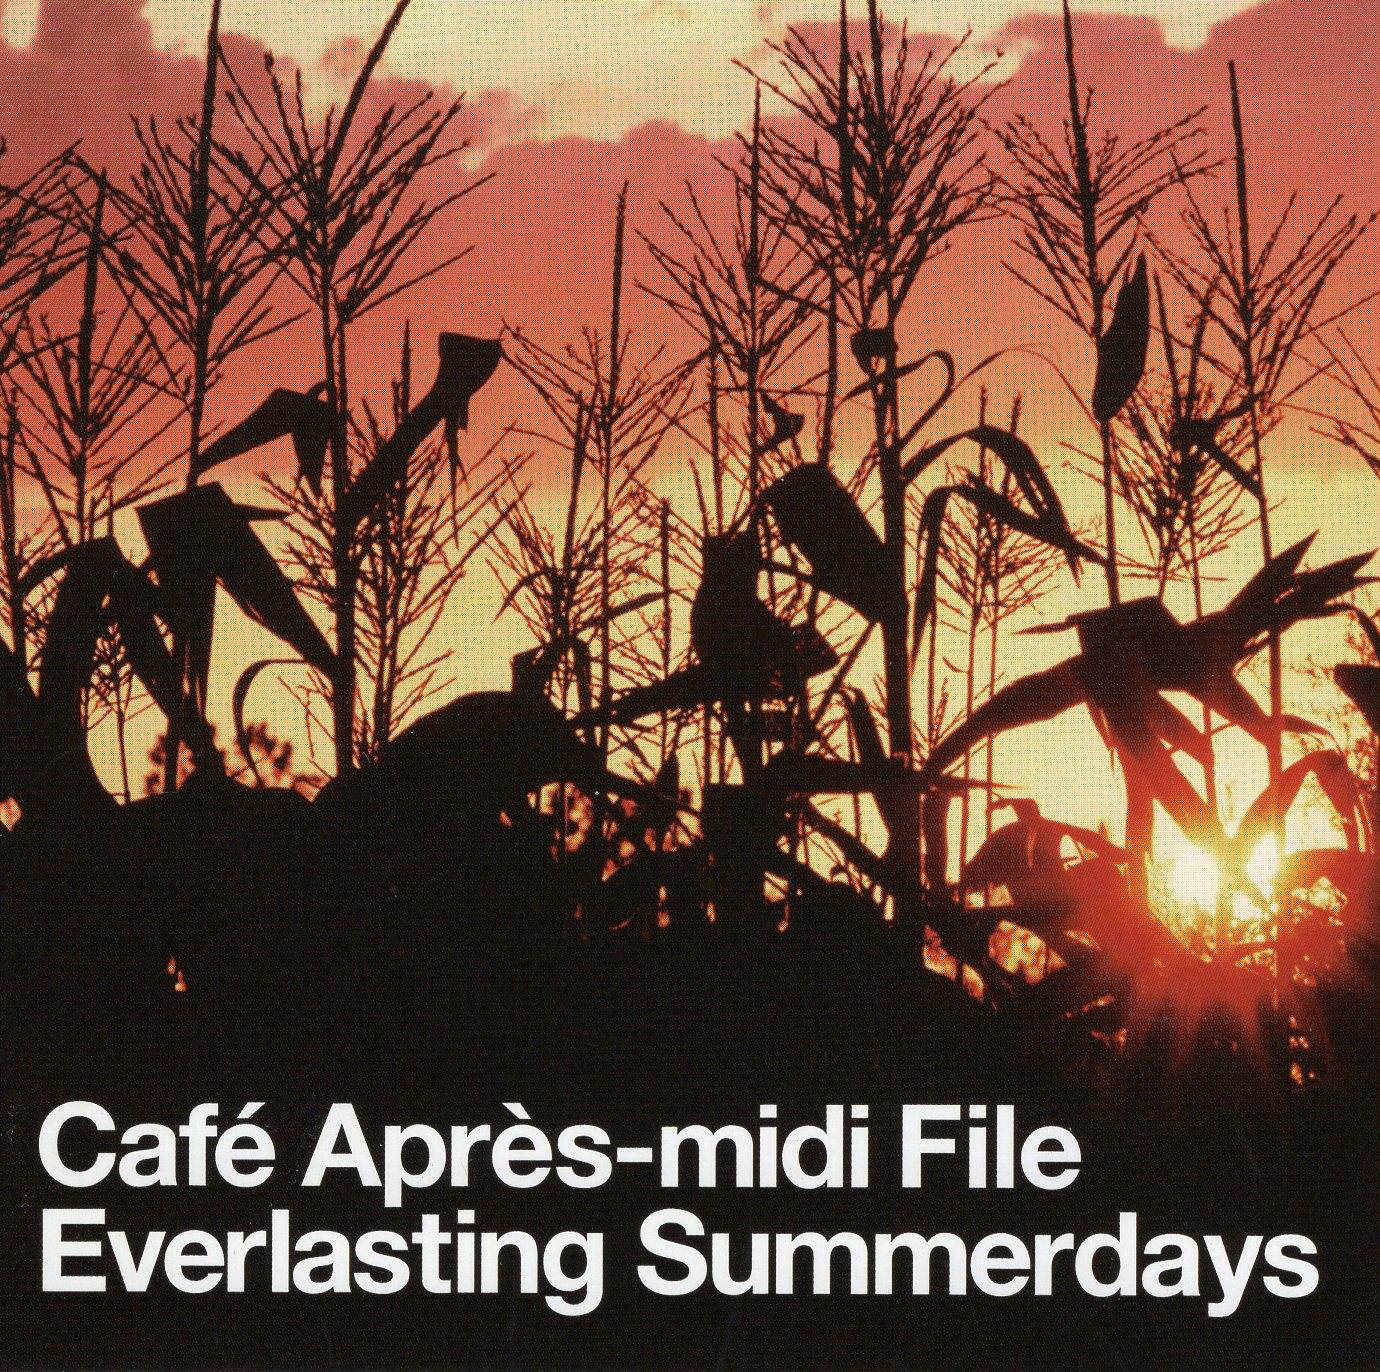 """Cafe Apres-midi File Everything Summerdays"""